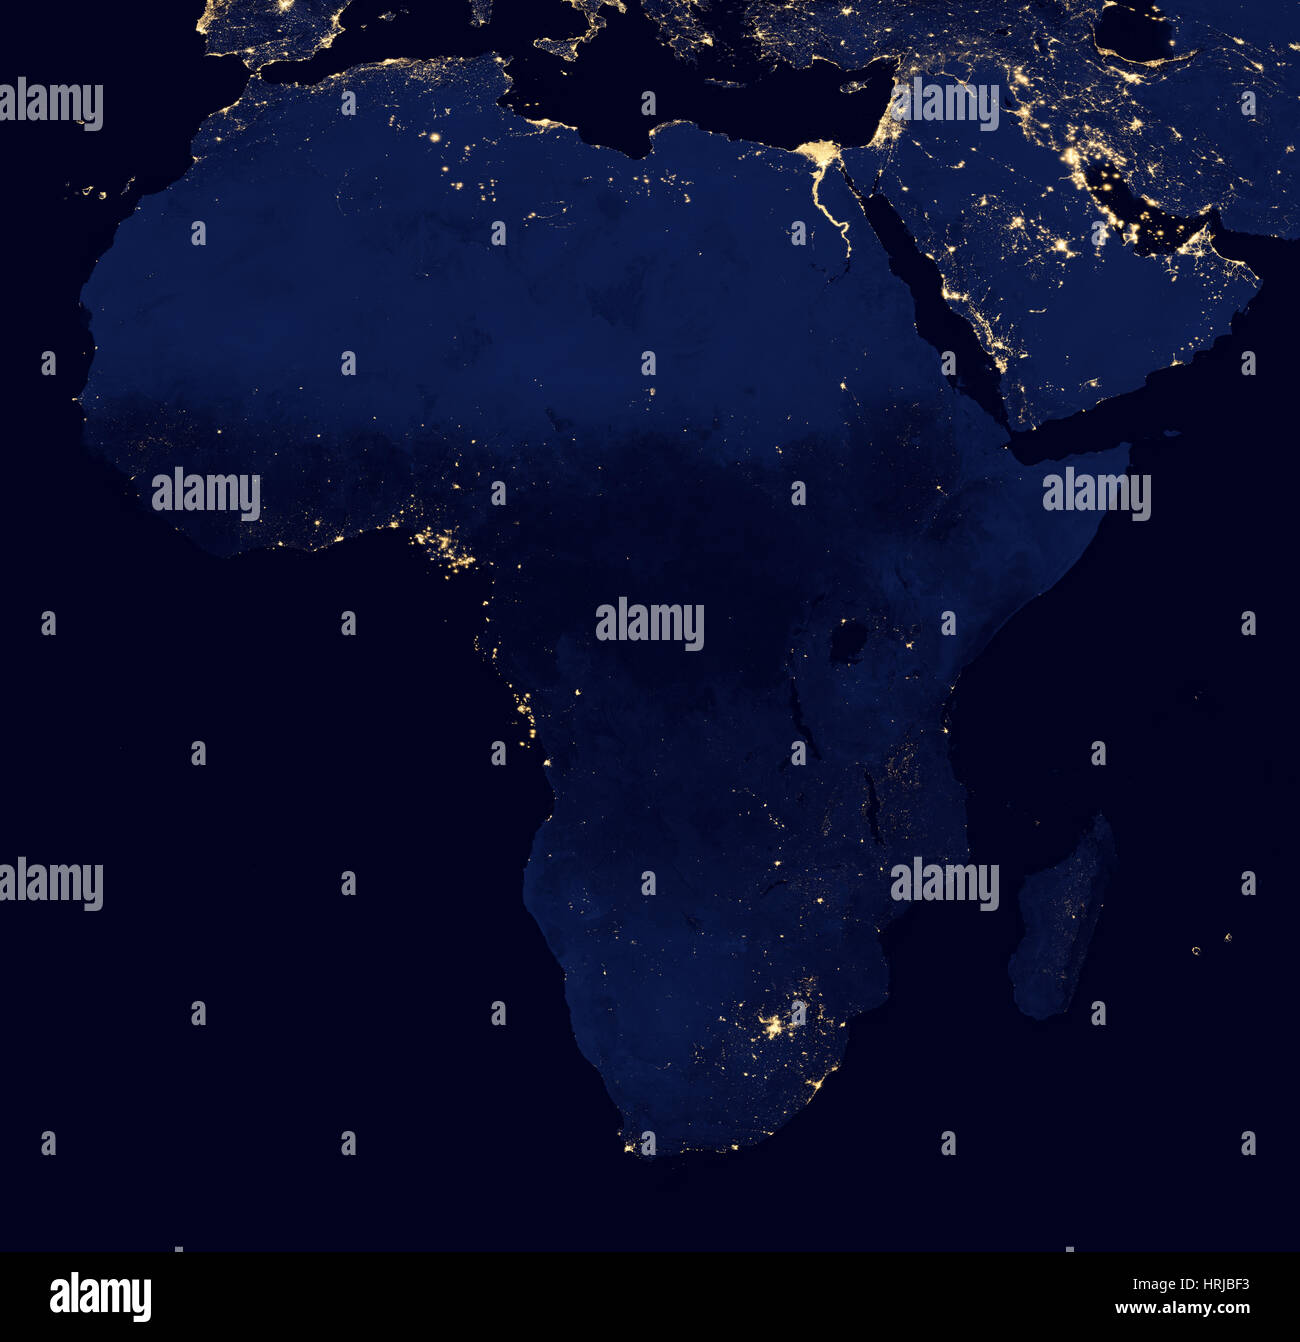 Africa at Night, 2012 - Stock Image